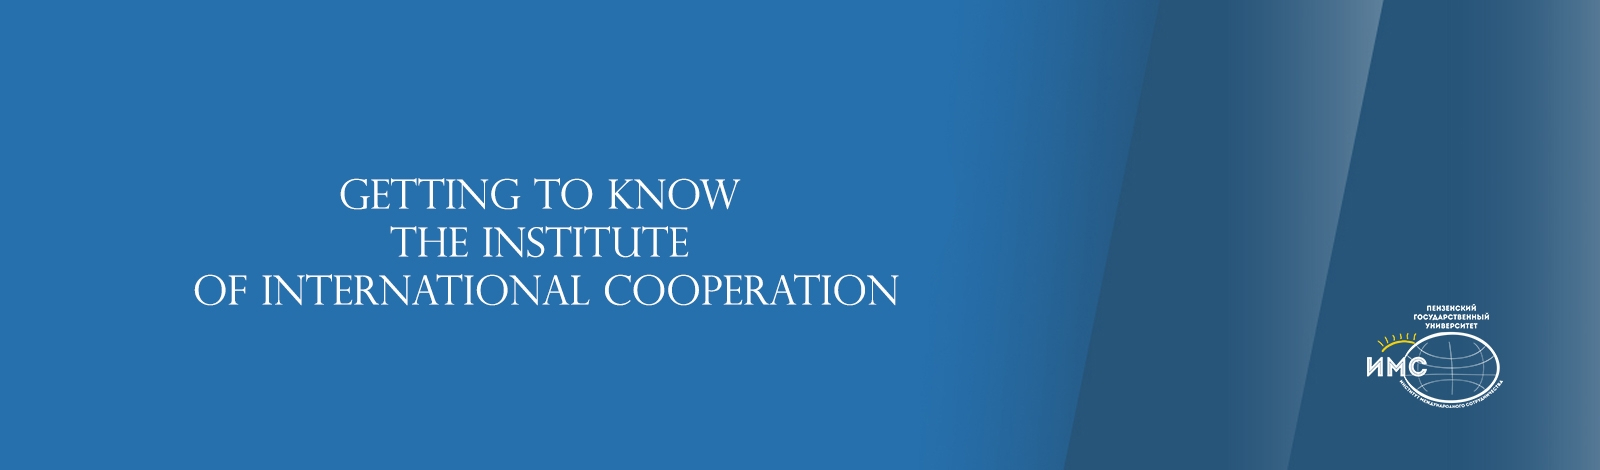 Getting to know the Institute of International Cooperation